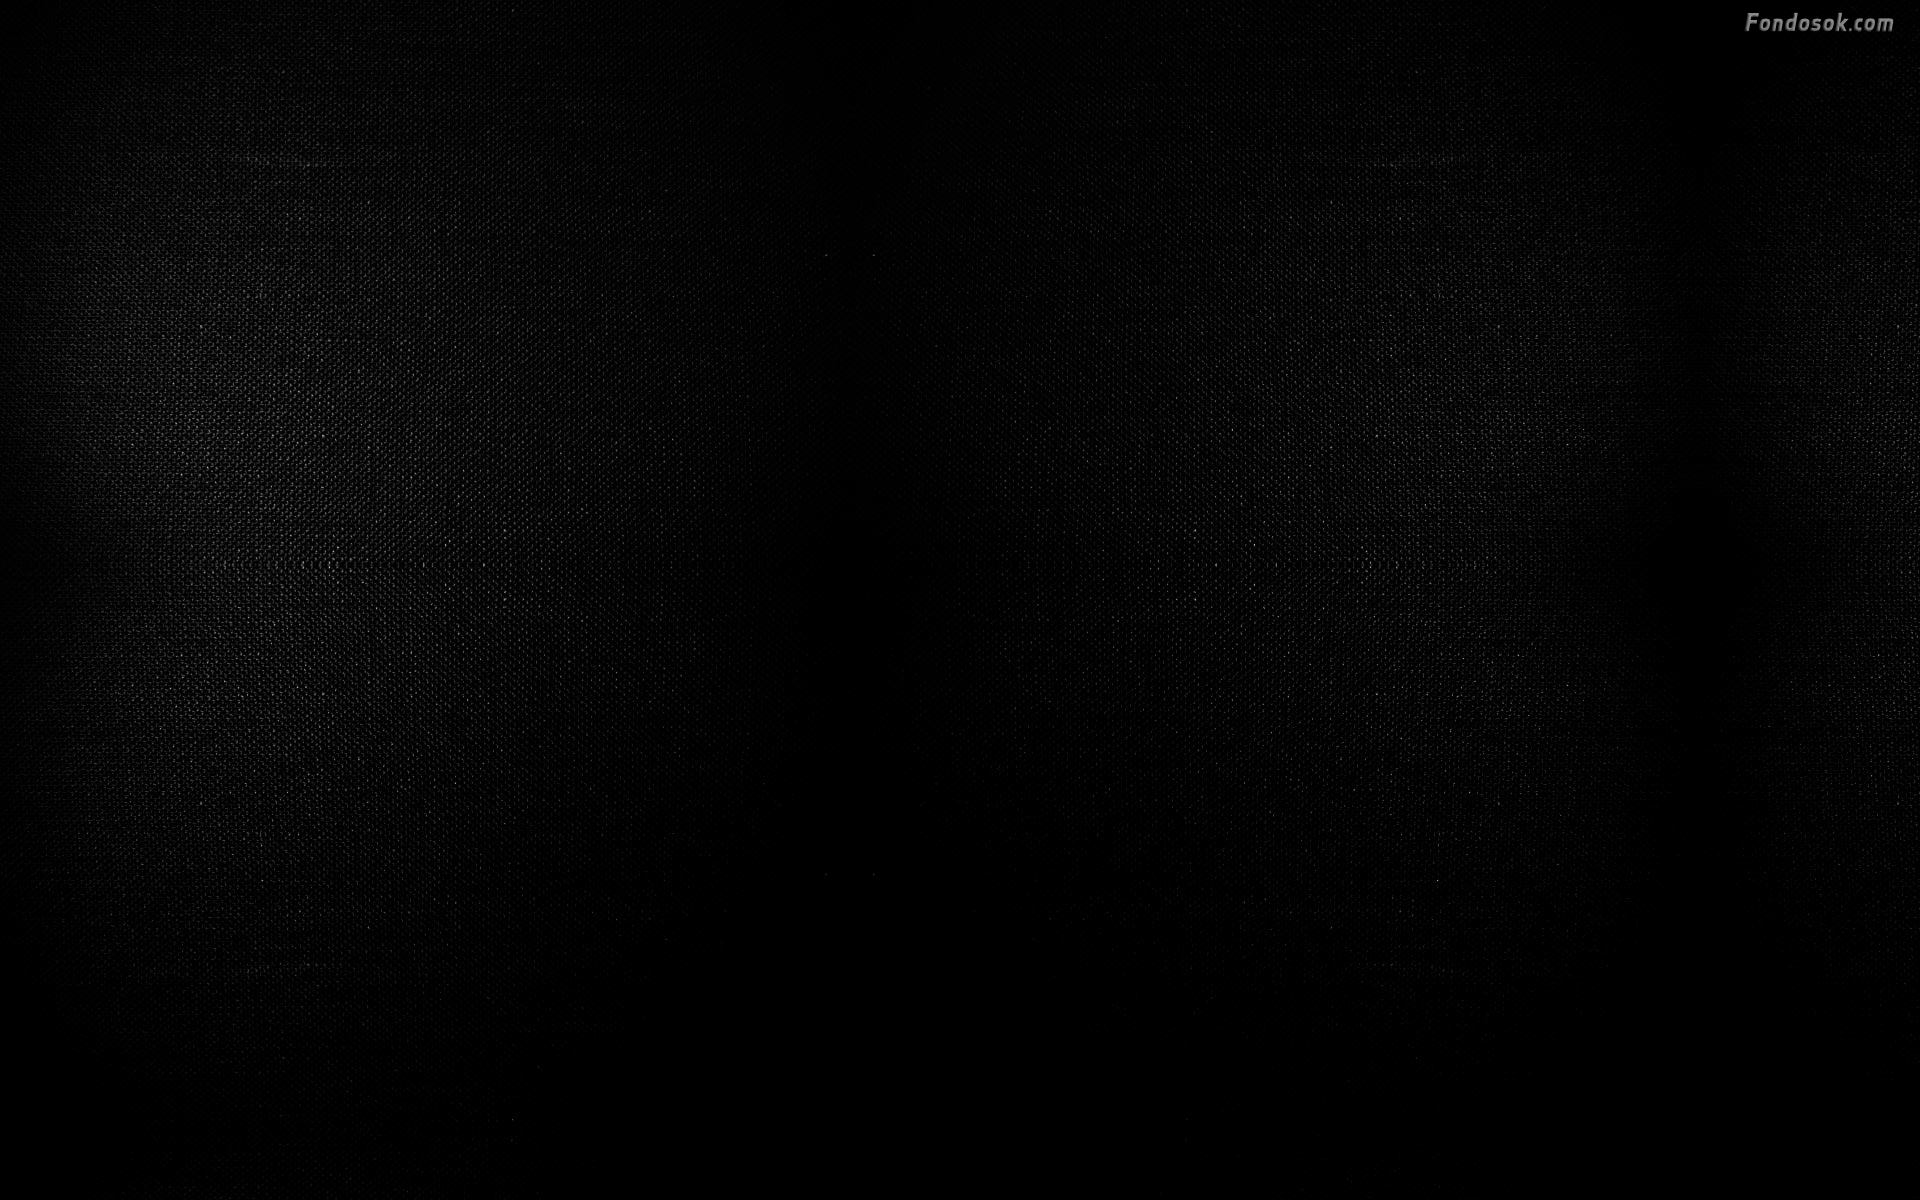 Fondos Fondo Negro Widescreen Wallpapers Hd Y Fondos De 1920x1200